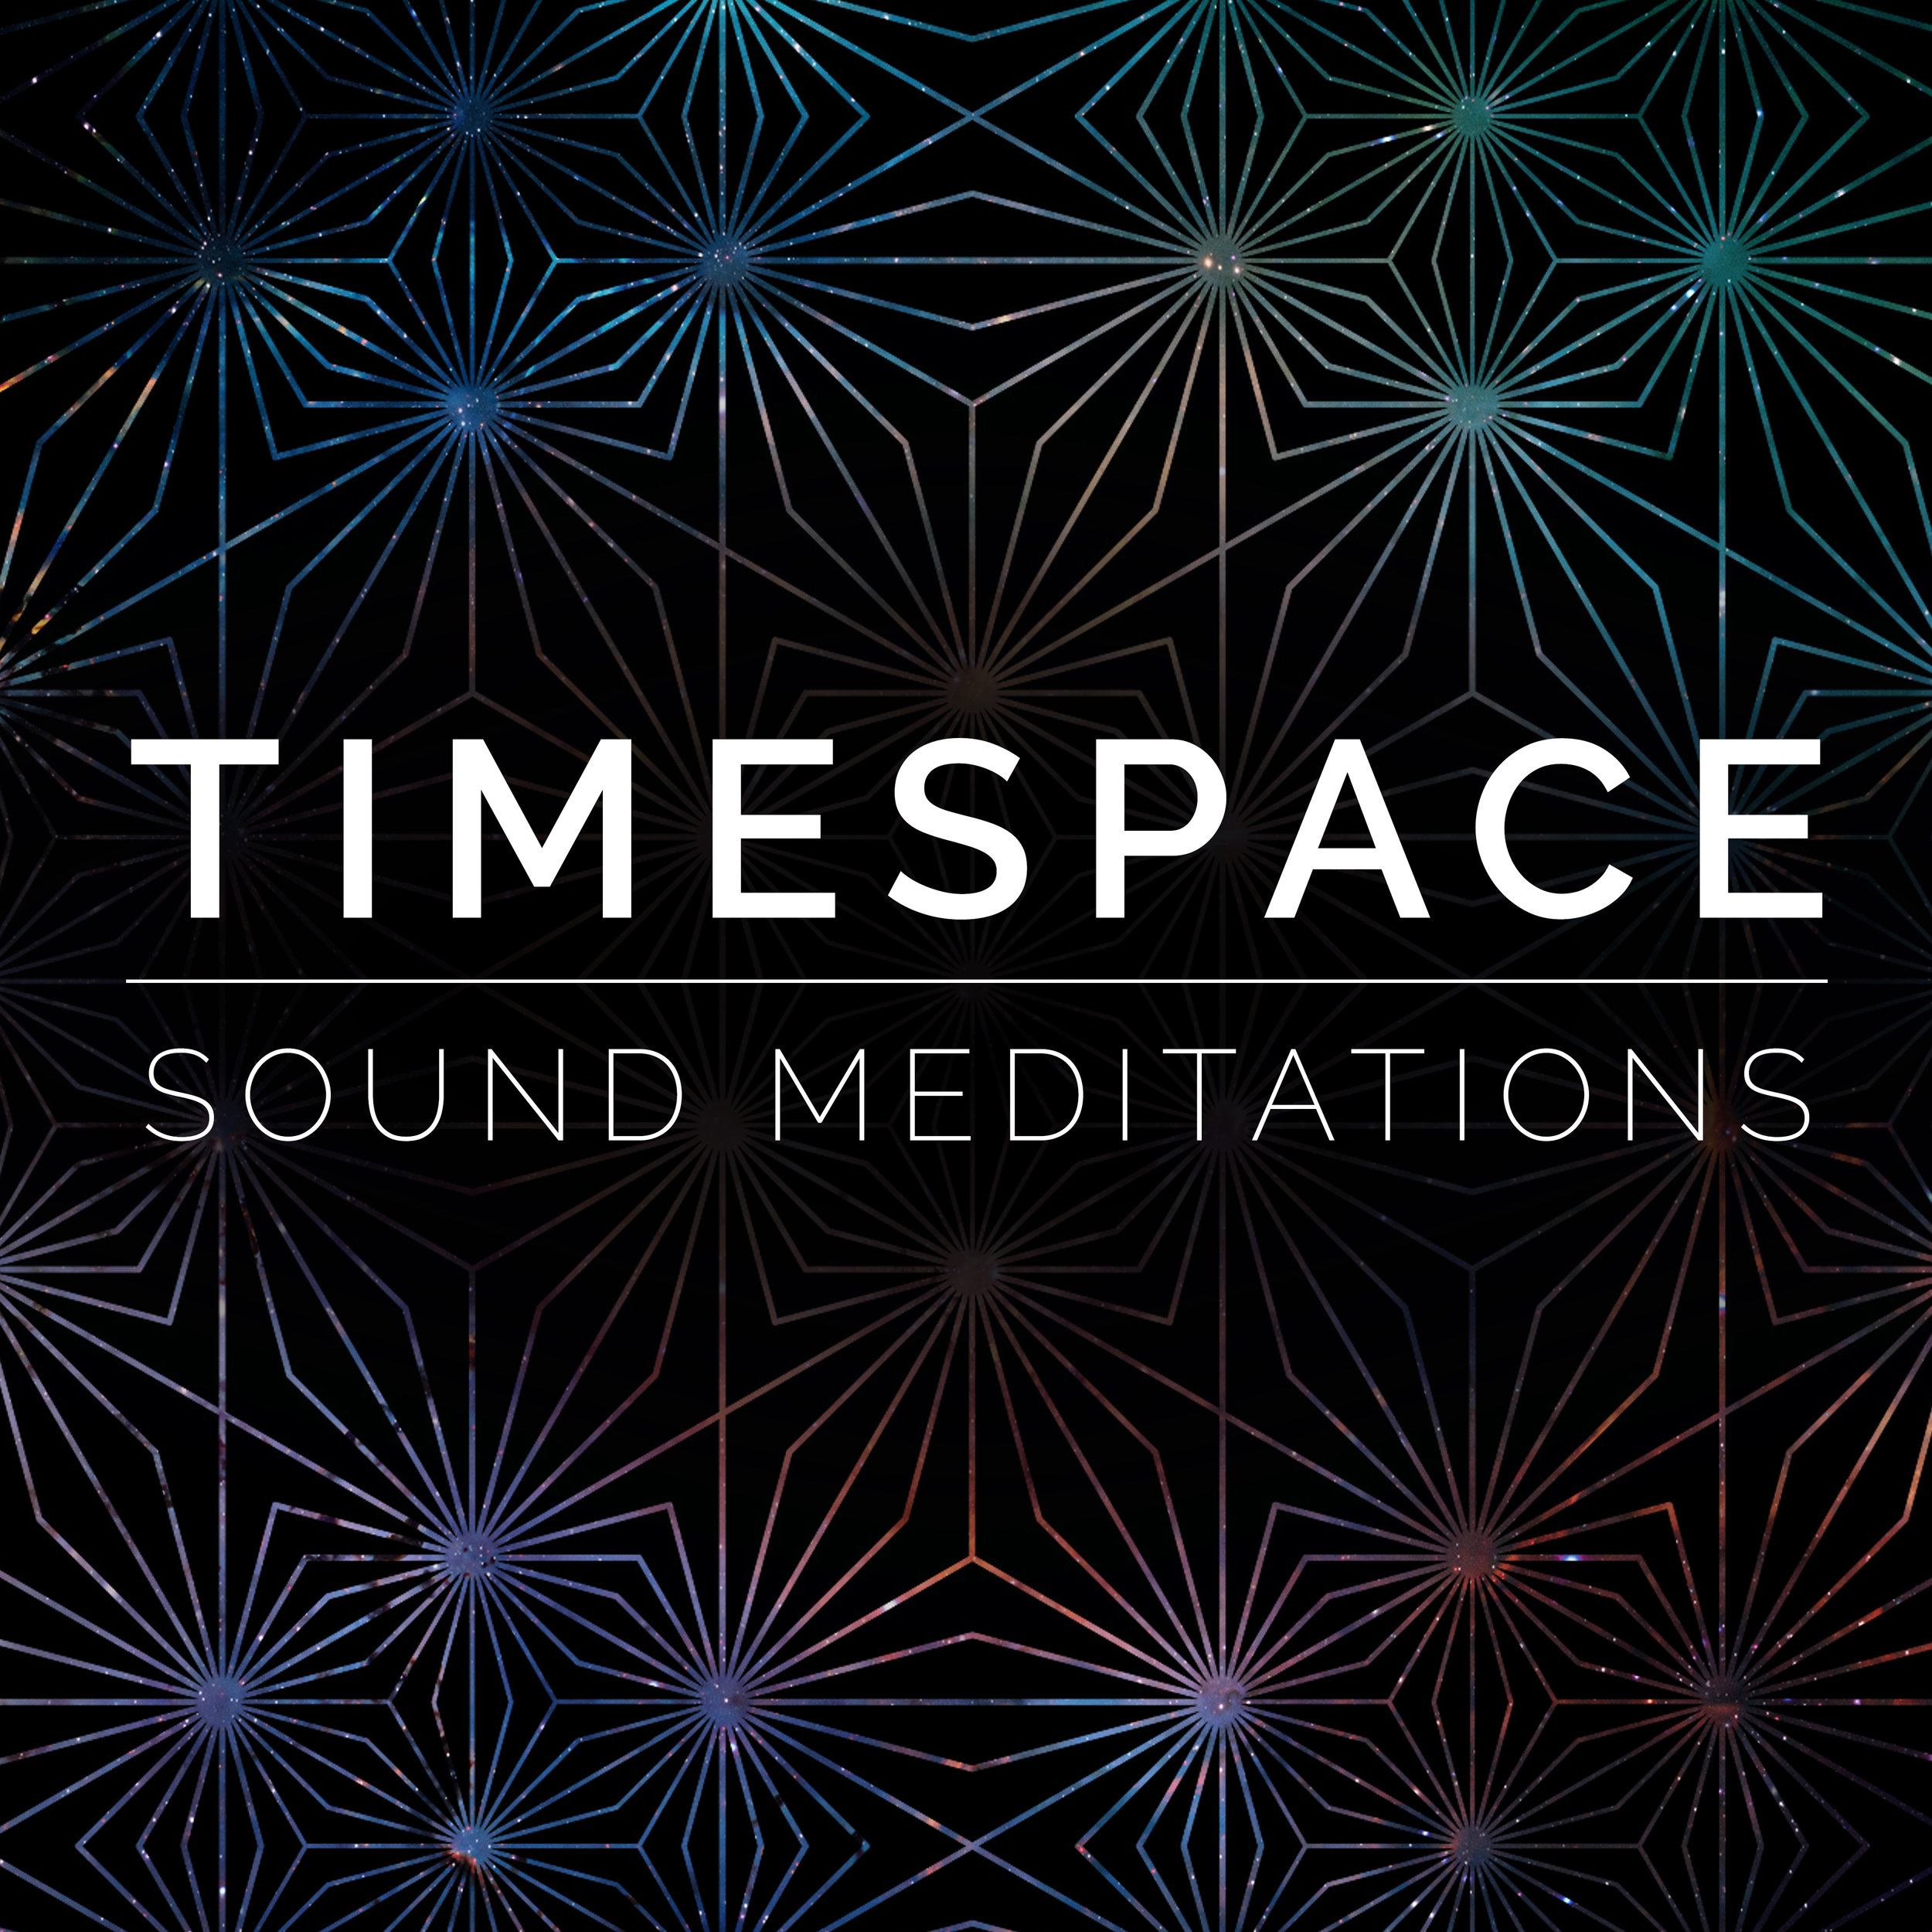 TIMESPACE